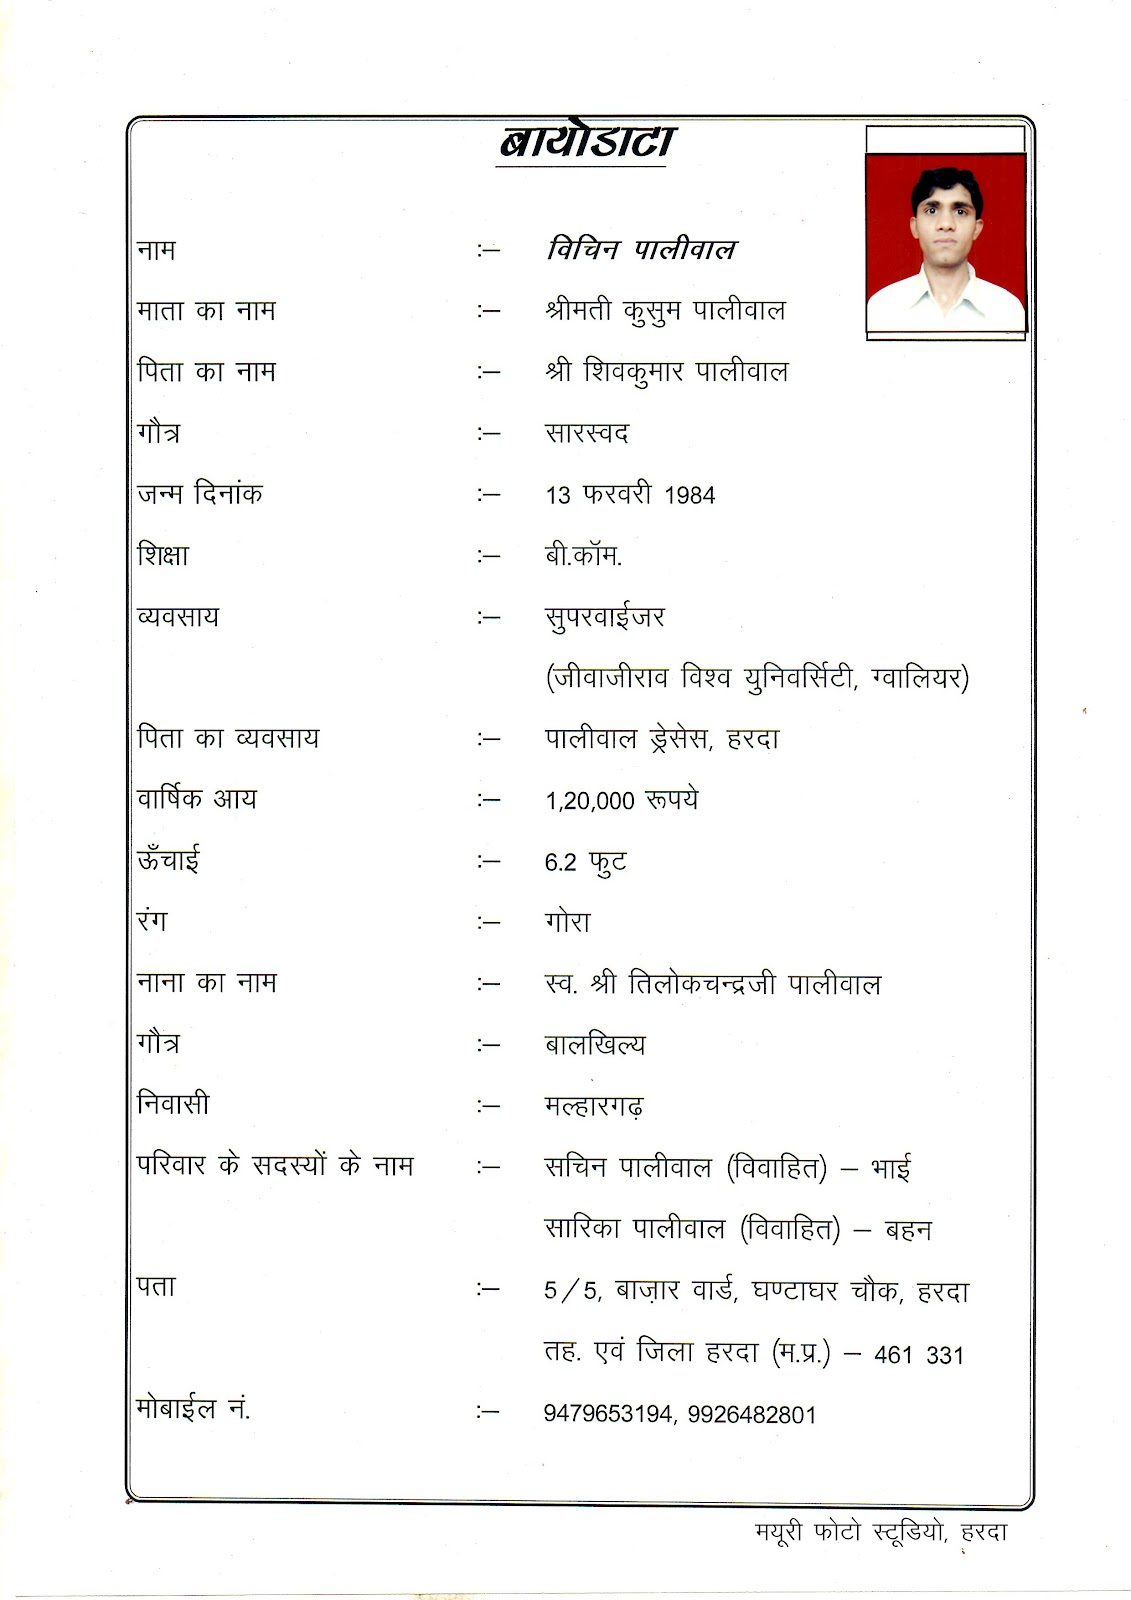 marriage biodata format for girl doc - Madran kaptanband co